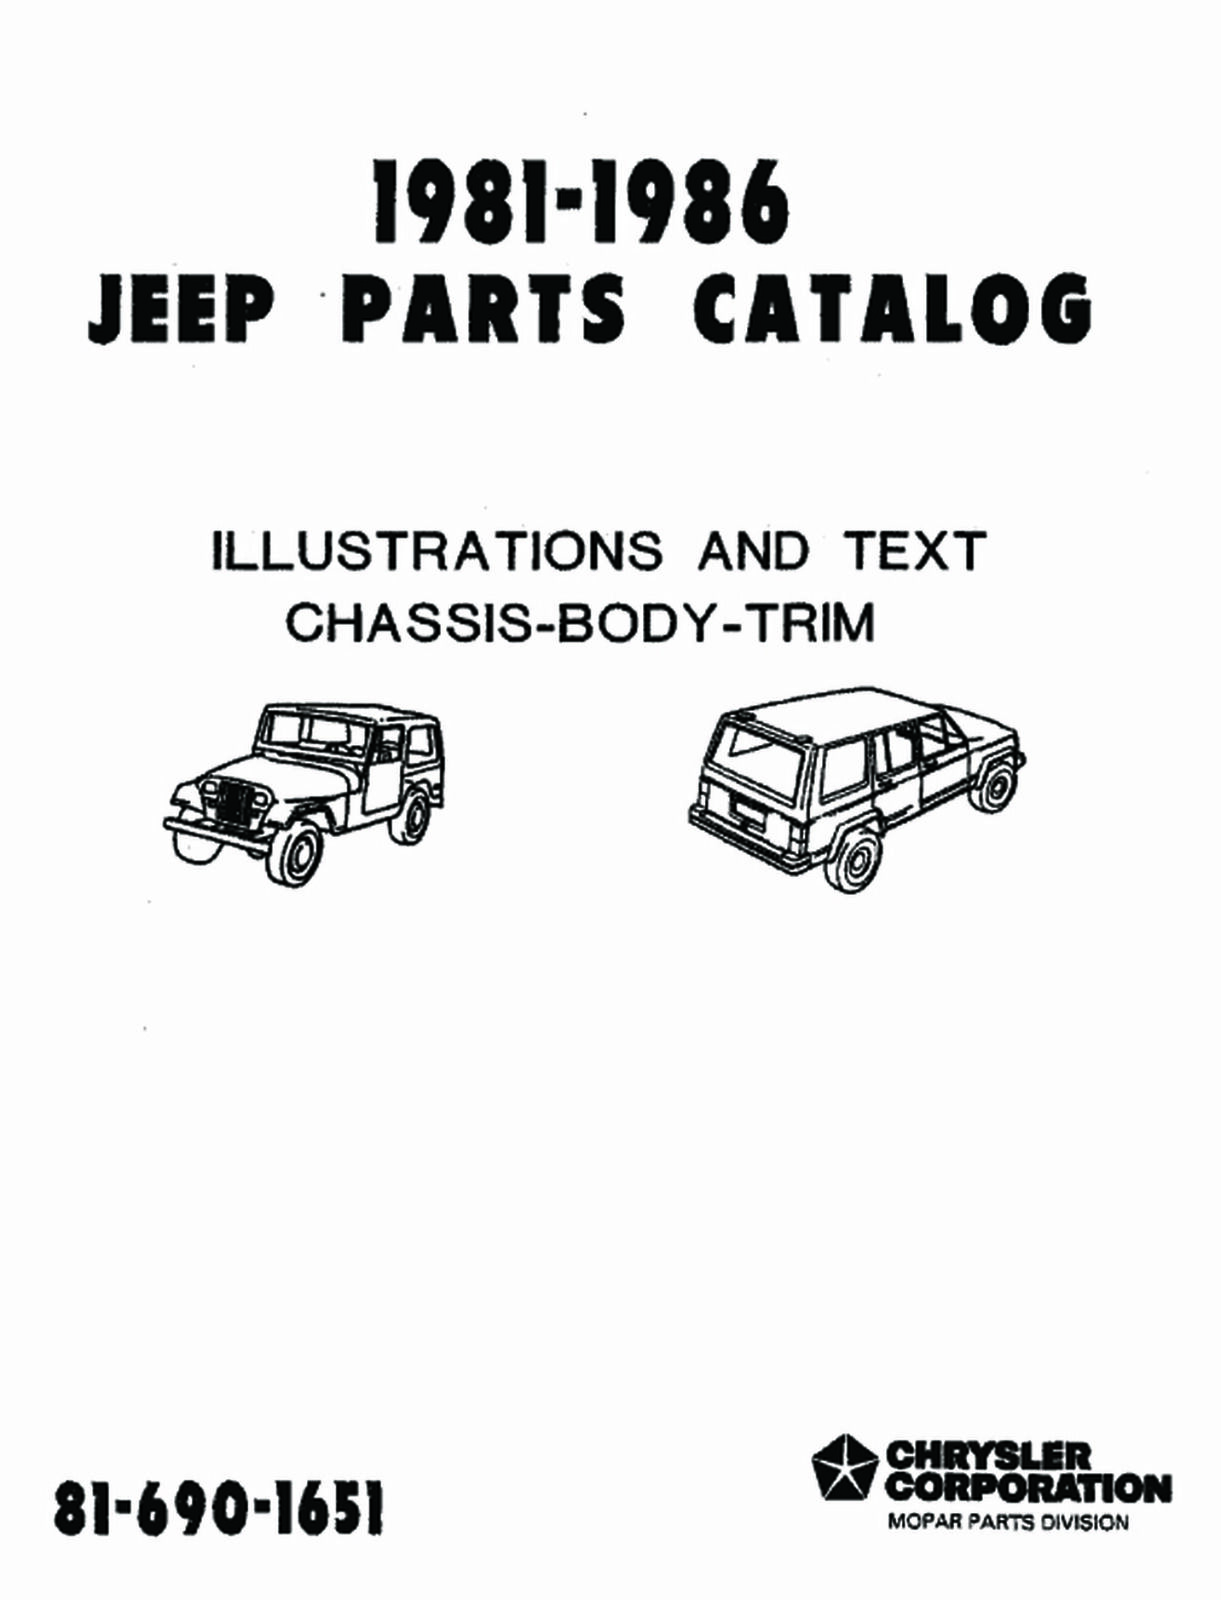 FEO Repair Maintenance Parts Book Loose Leaf for Jeep All Models 1981-1986